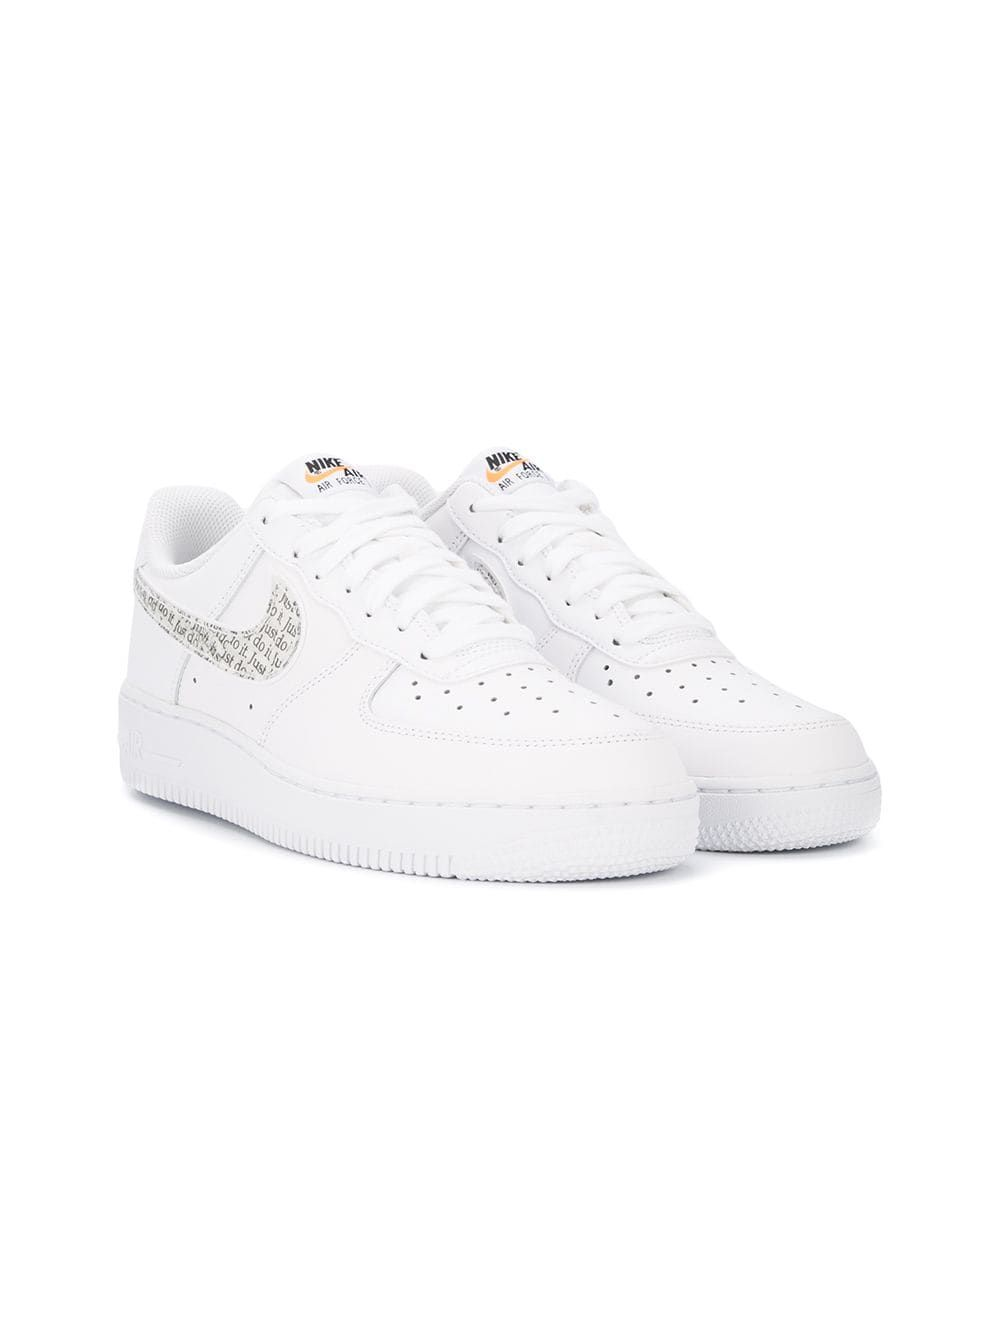 Nike Kids Air Force 1 07 Lv8 Jdi Lntc White Studded Sneakers Nike Kids Metallic Sneakers